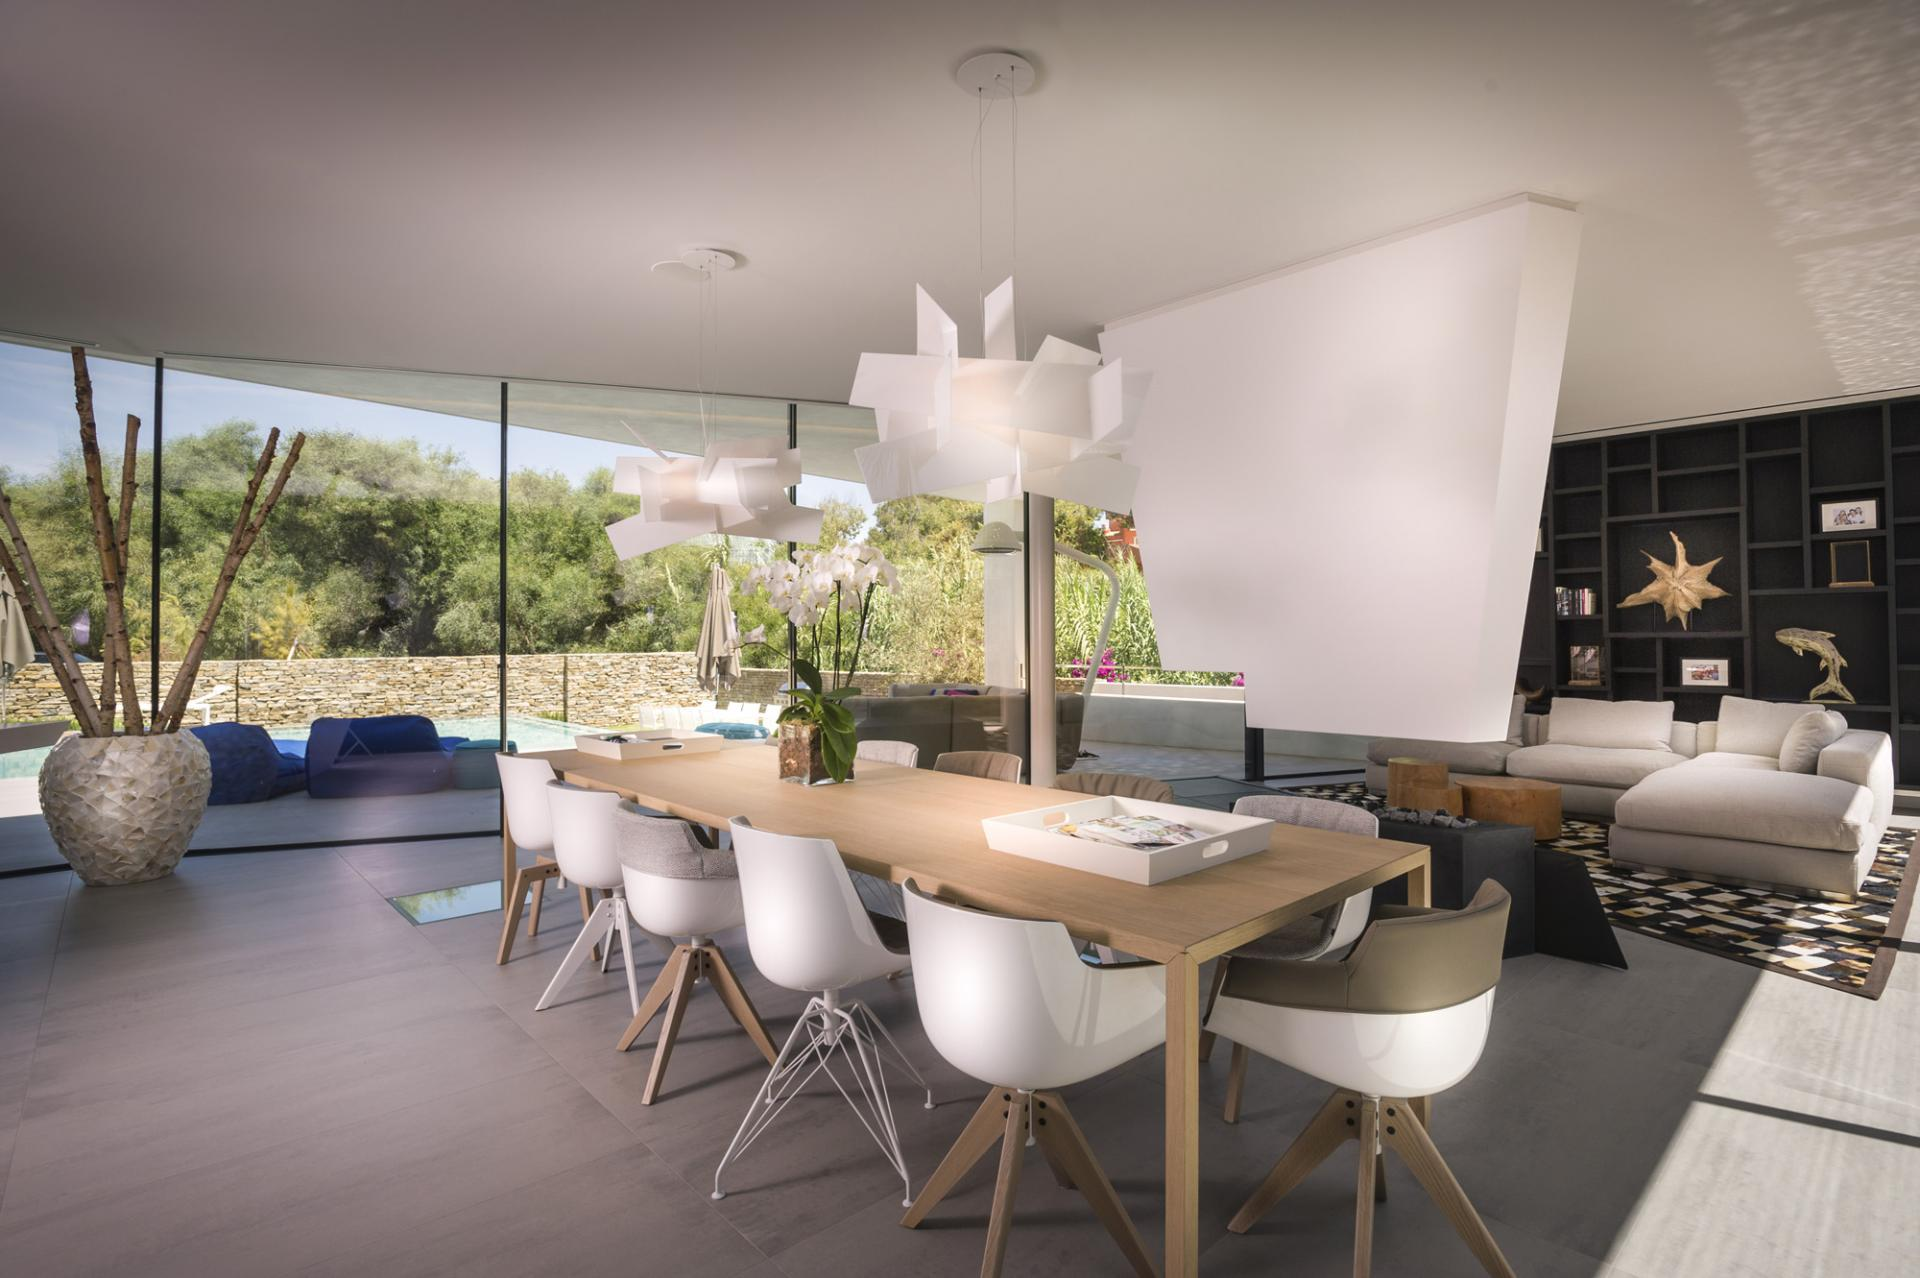 Geometric Dining Room - A cool beachfront villa with geometric architecture